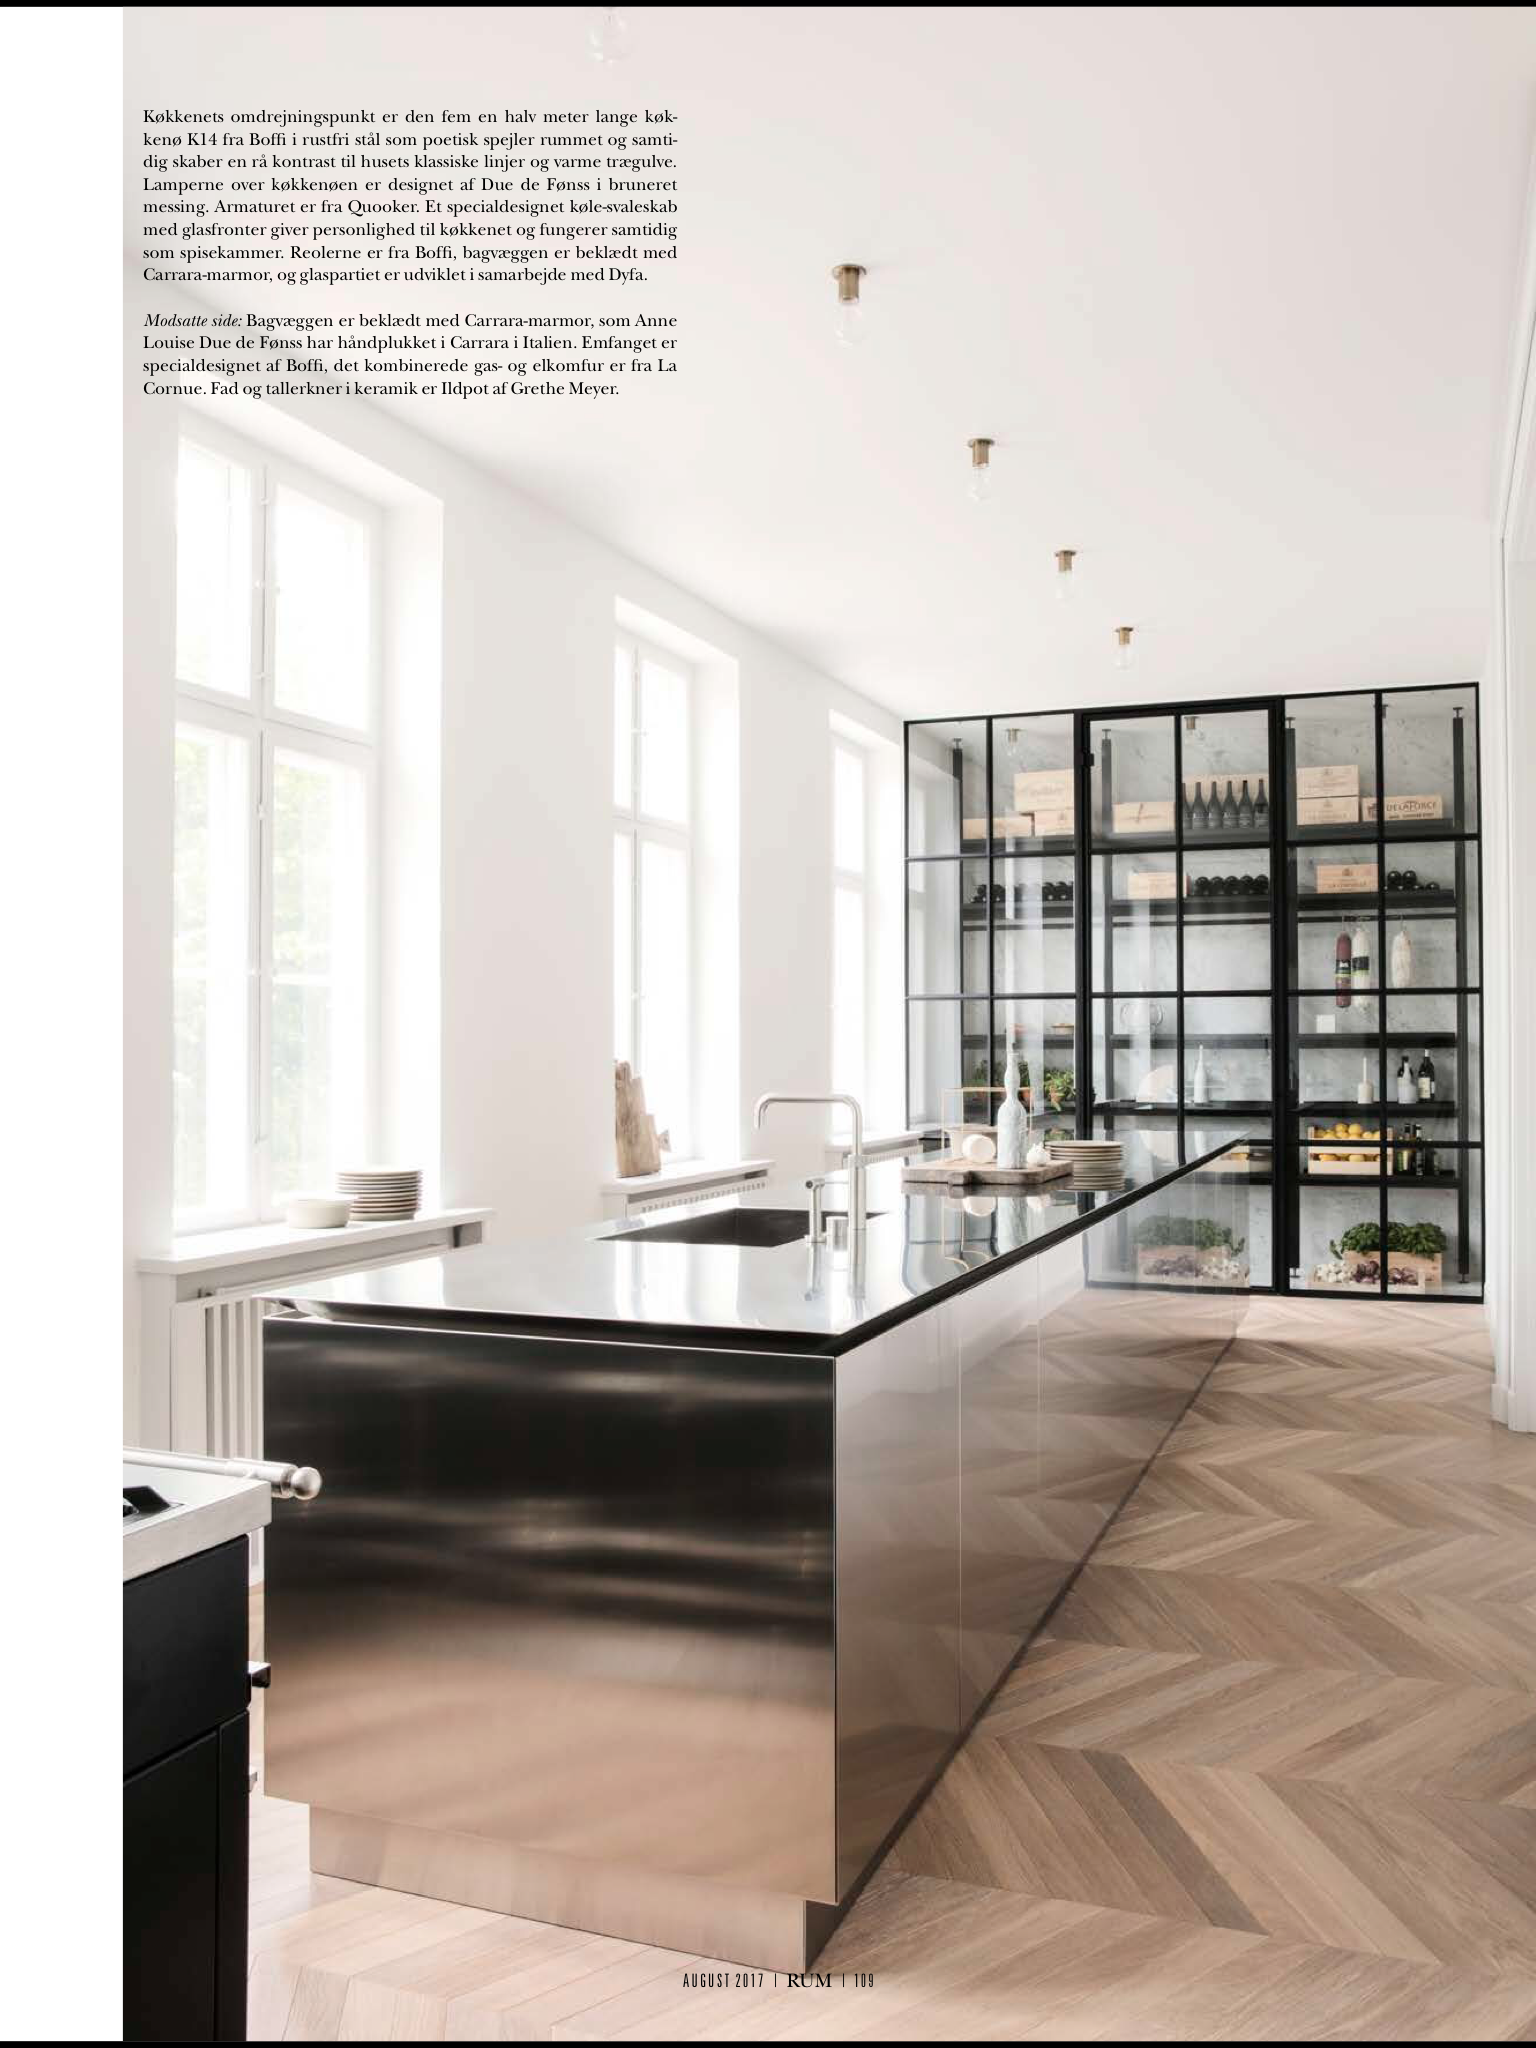 We love timber flooring in the kitchen read more about why its a good idea